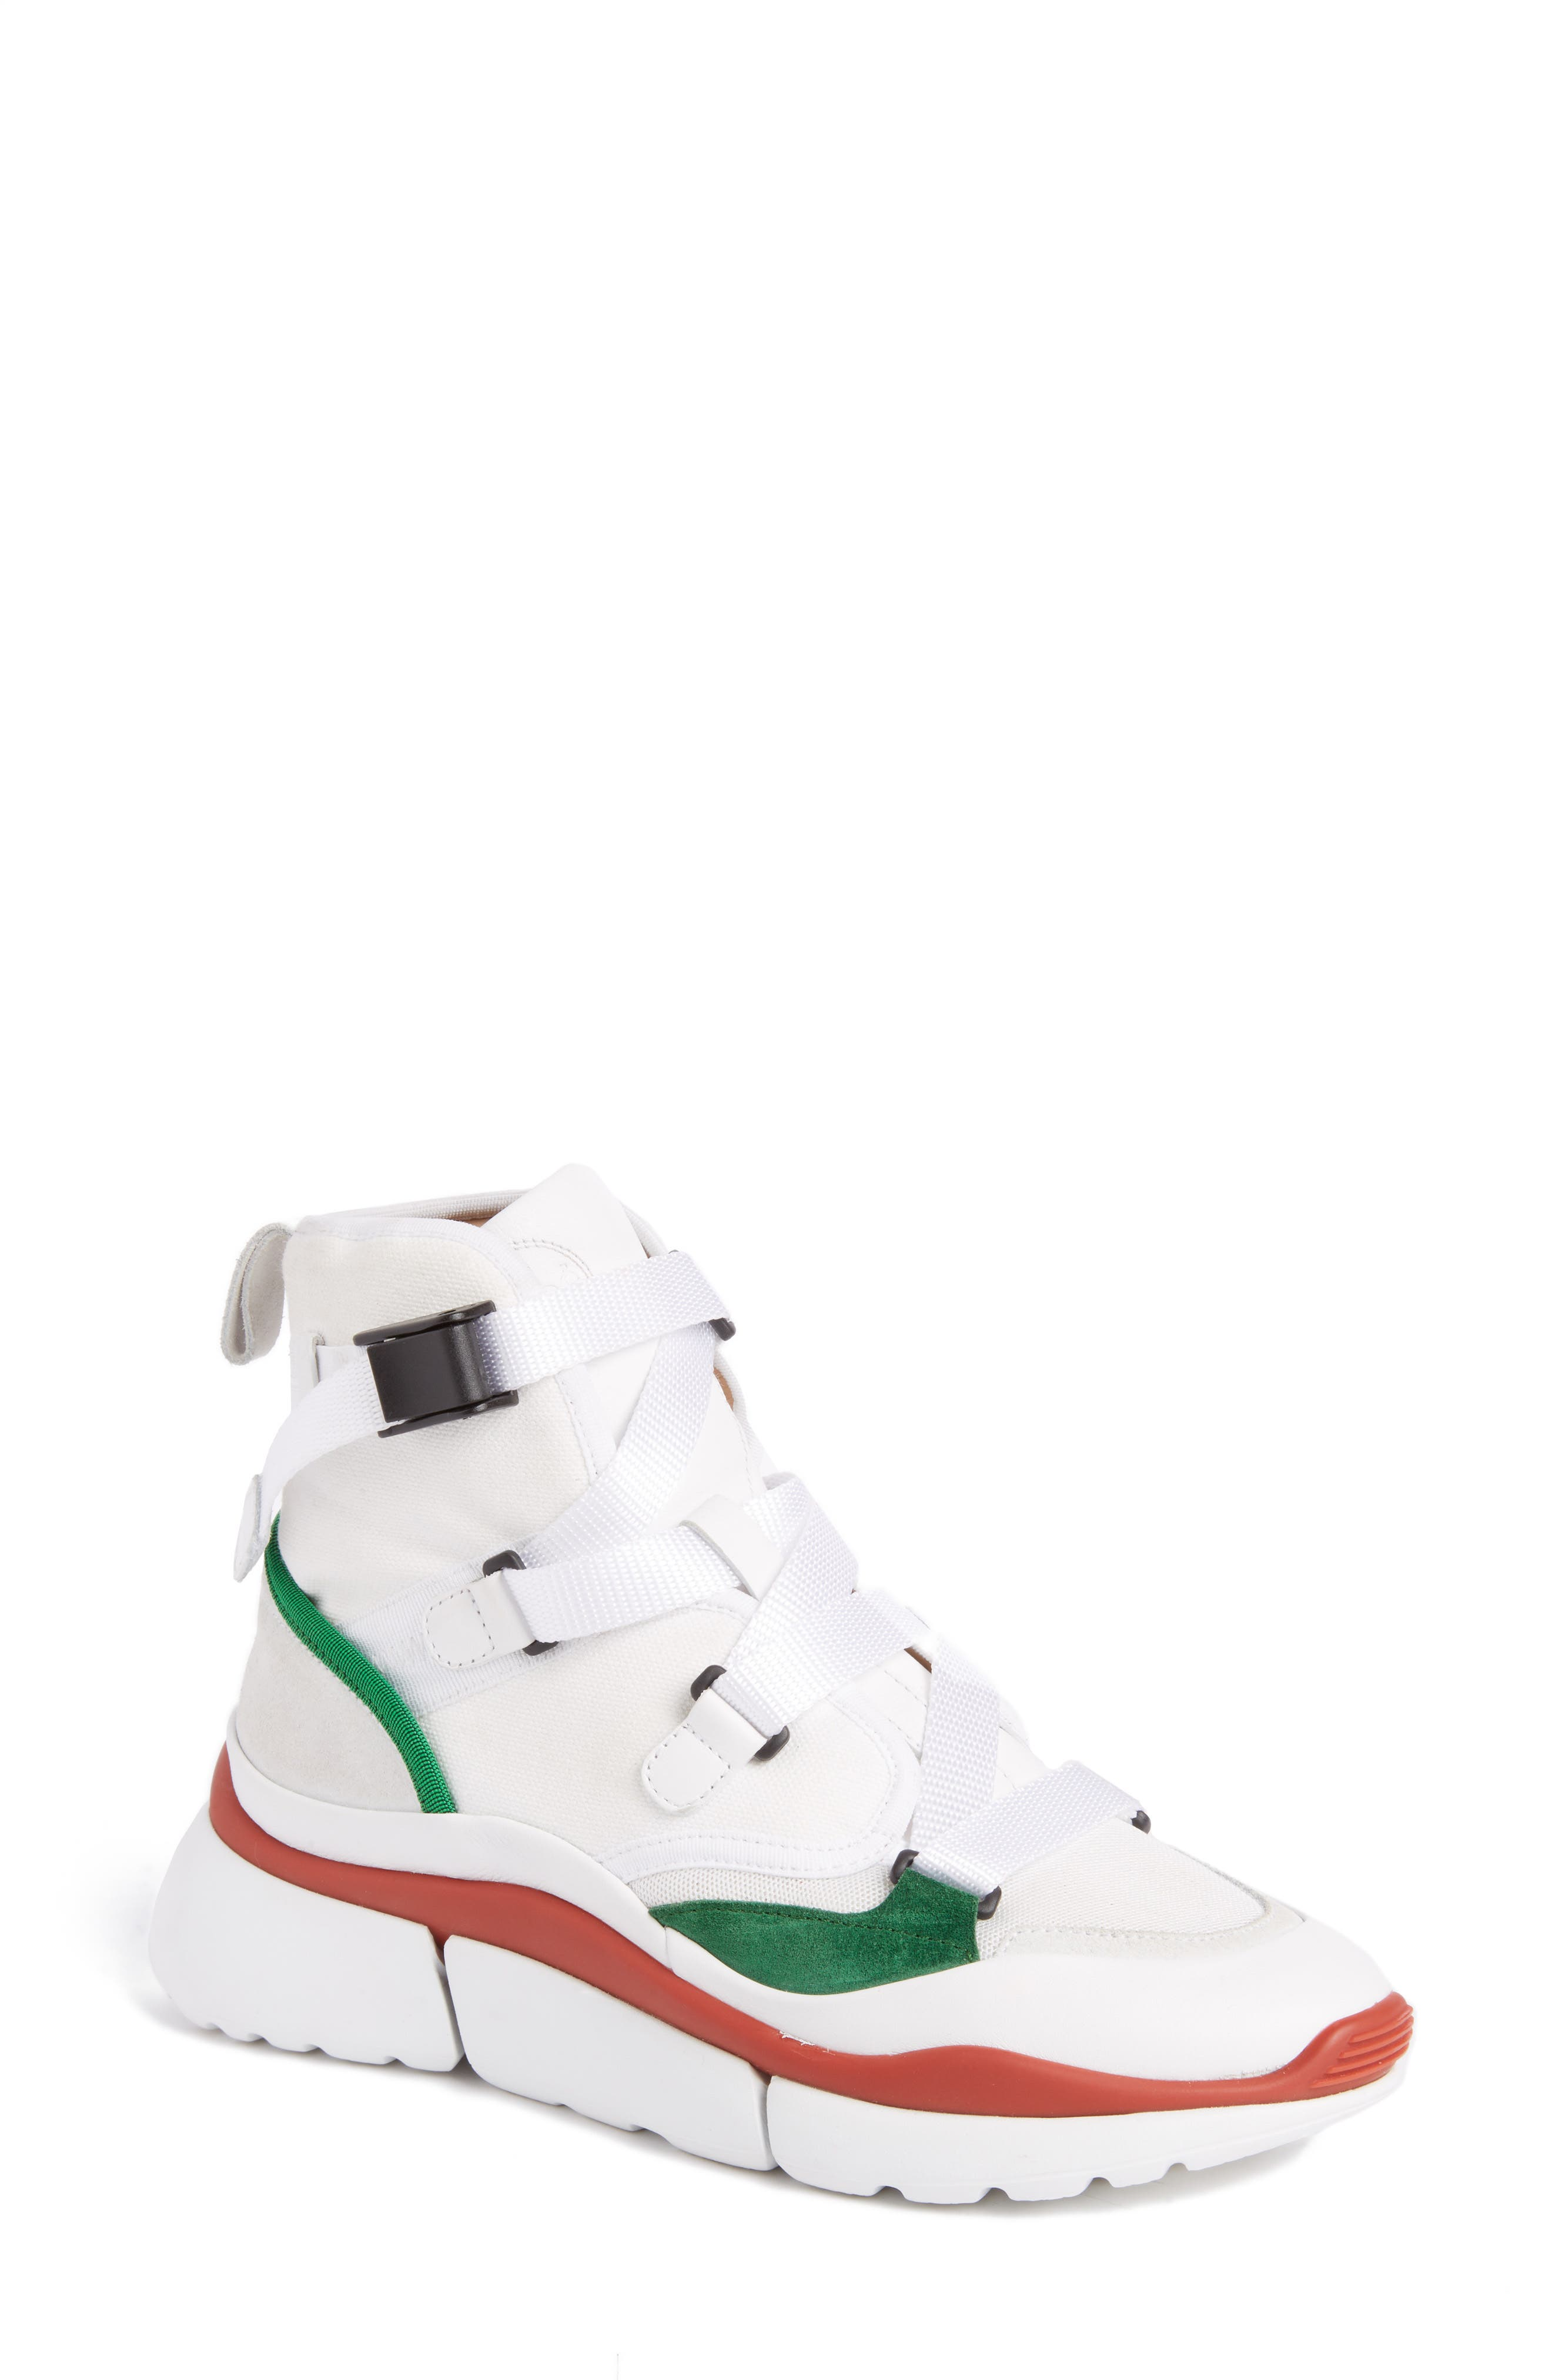 Sonnie High Top Sneaker,                             Main thumbnail 1, color,                             White/ Green/ Red